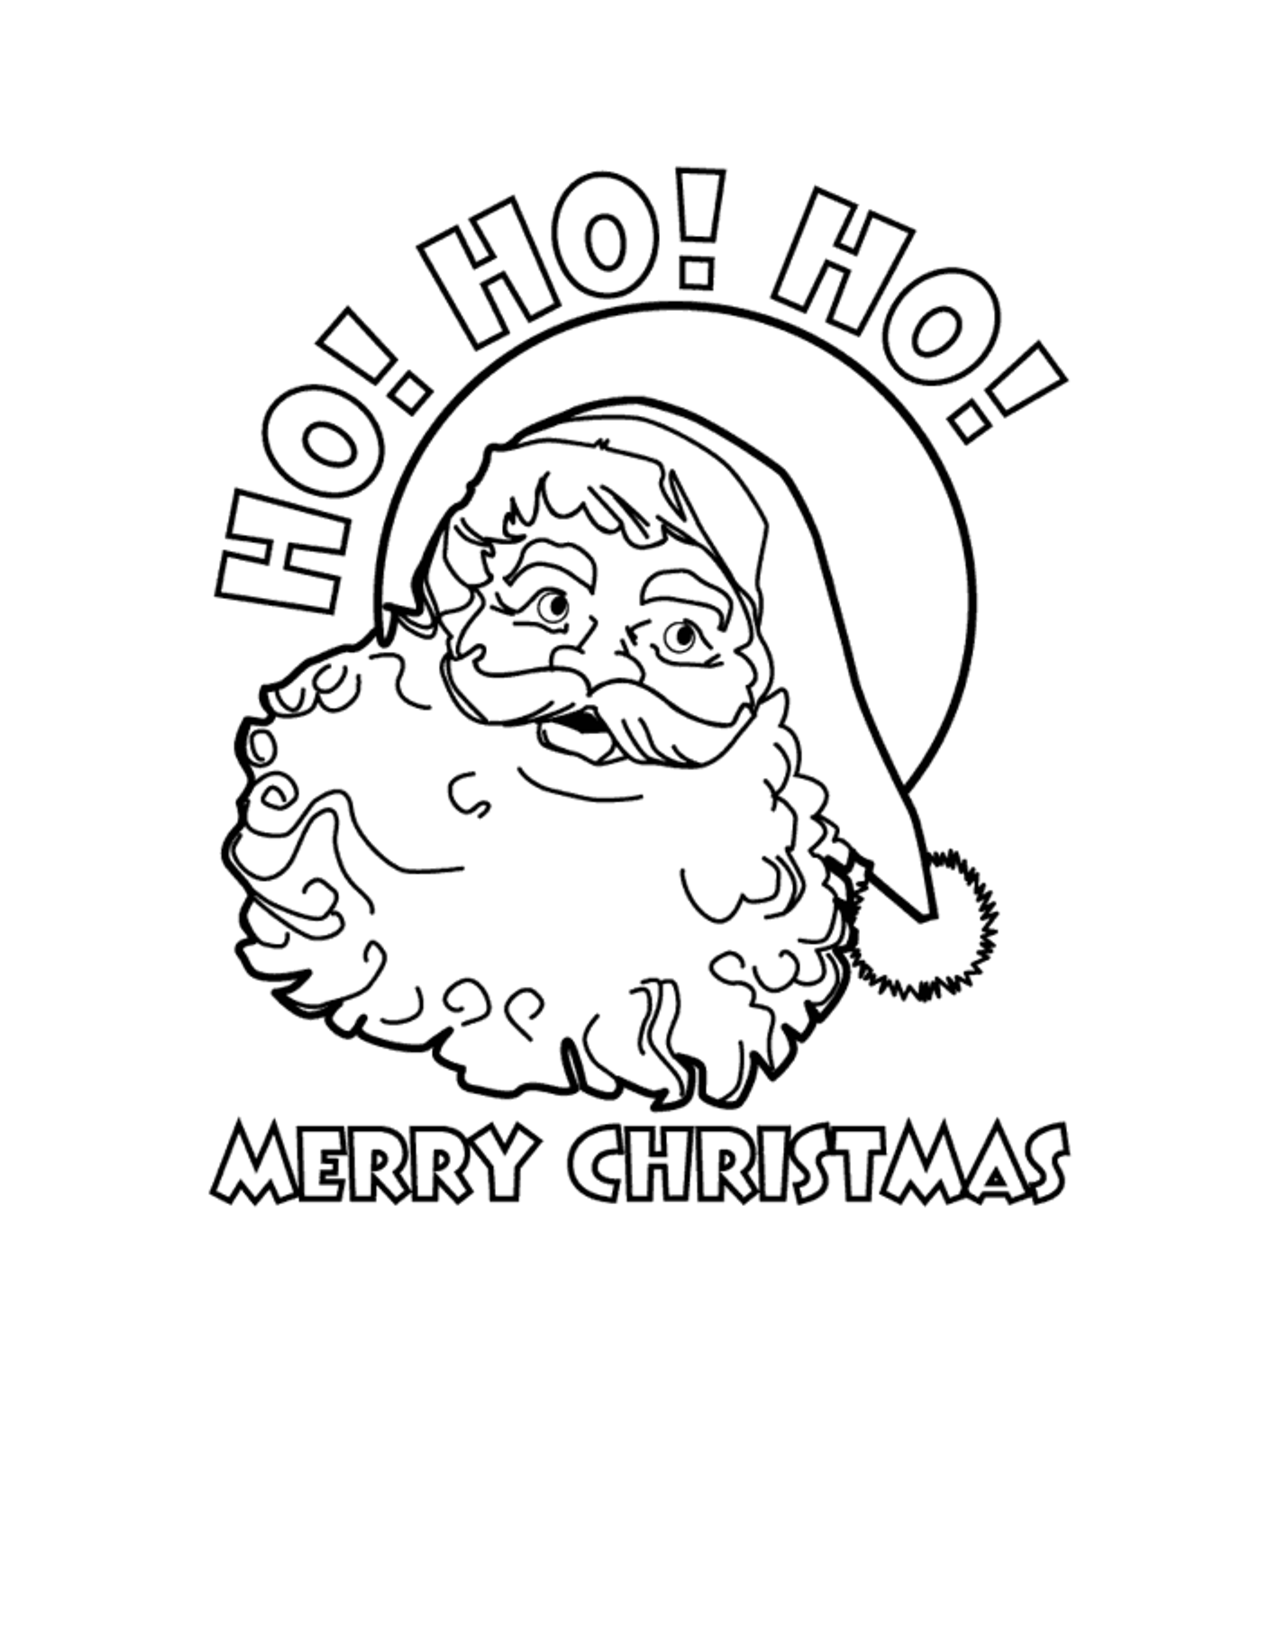 Free coloring pages for christmas printable - Merry Christmas Printable Coloring Pages Ho Ho Ho Merry Christmas Santa Free Printable Coloring Sheet